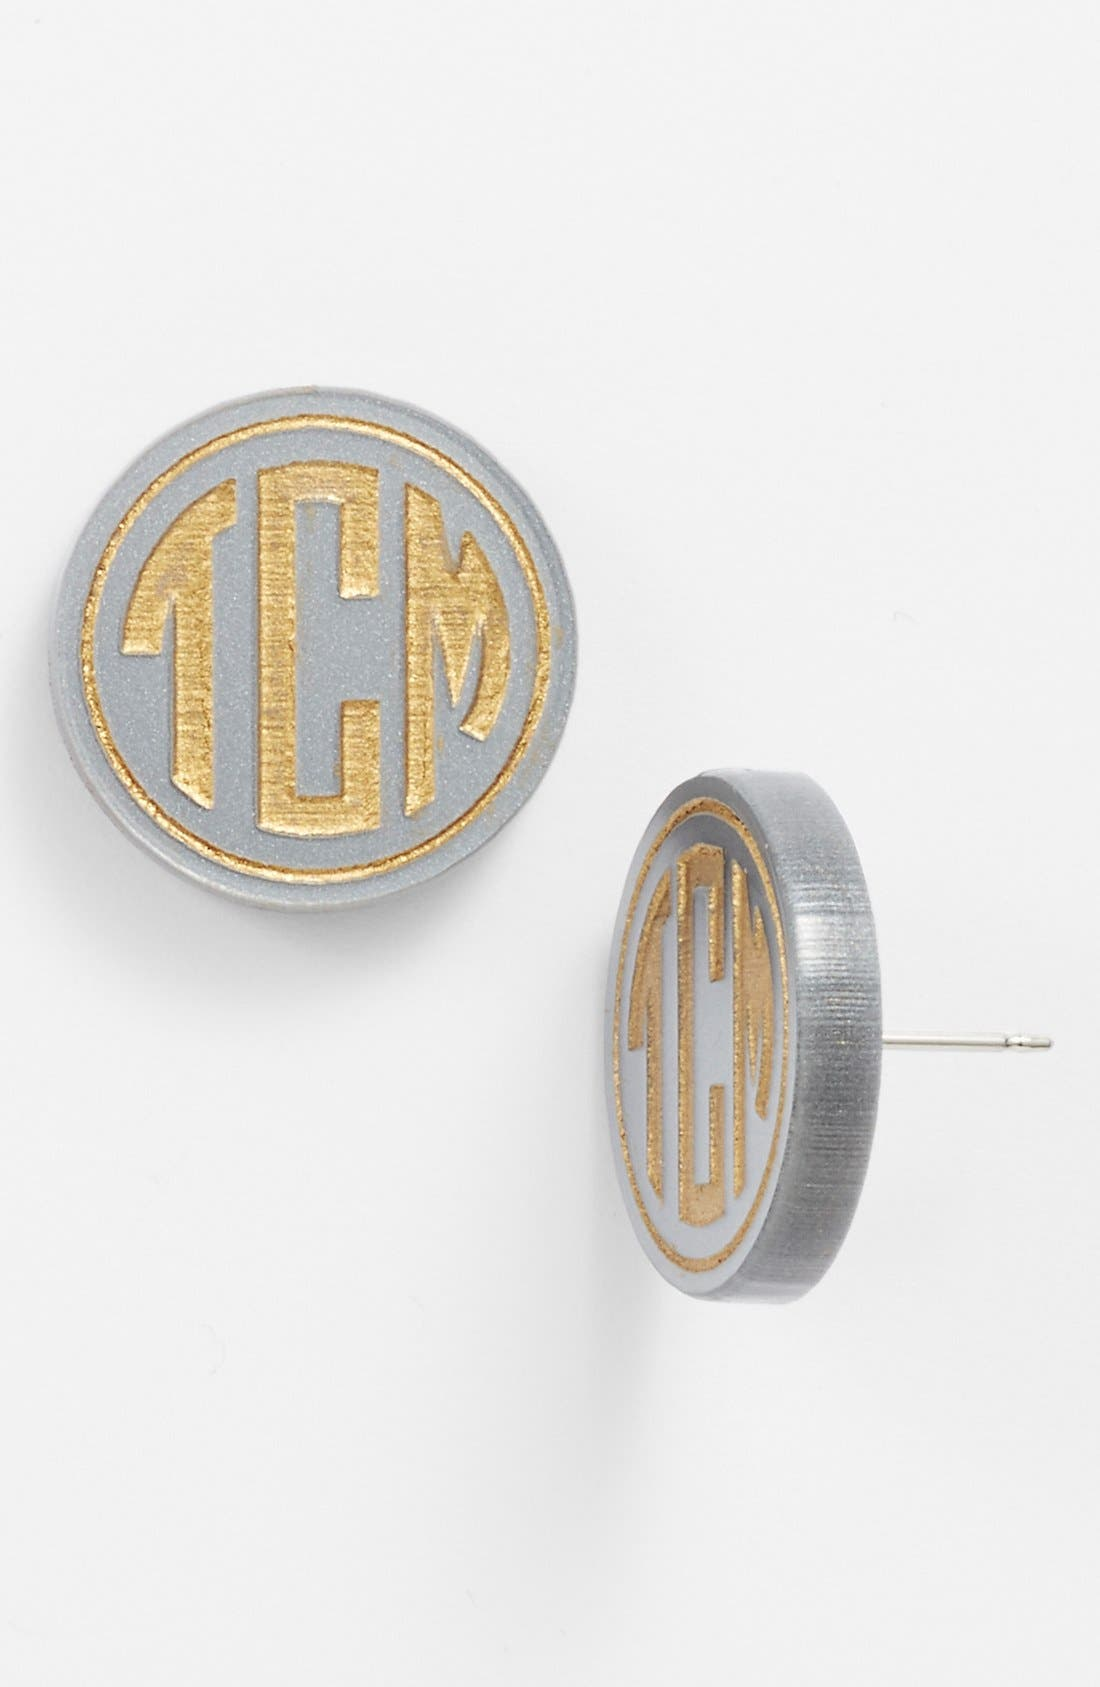 'Chelsea' Medium Personalized Monogram Stud Earrings,                         Main,                         color, GUNMETAL/ GOLD